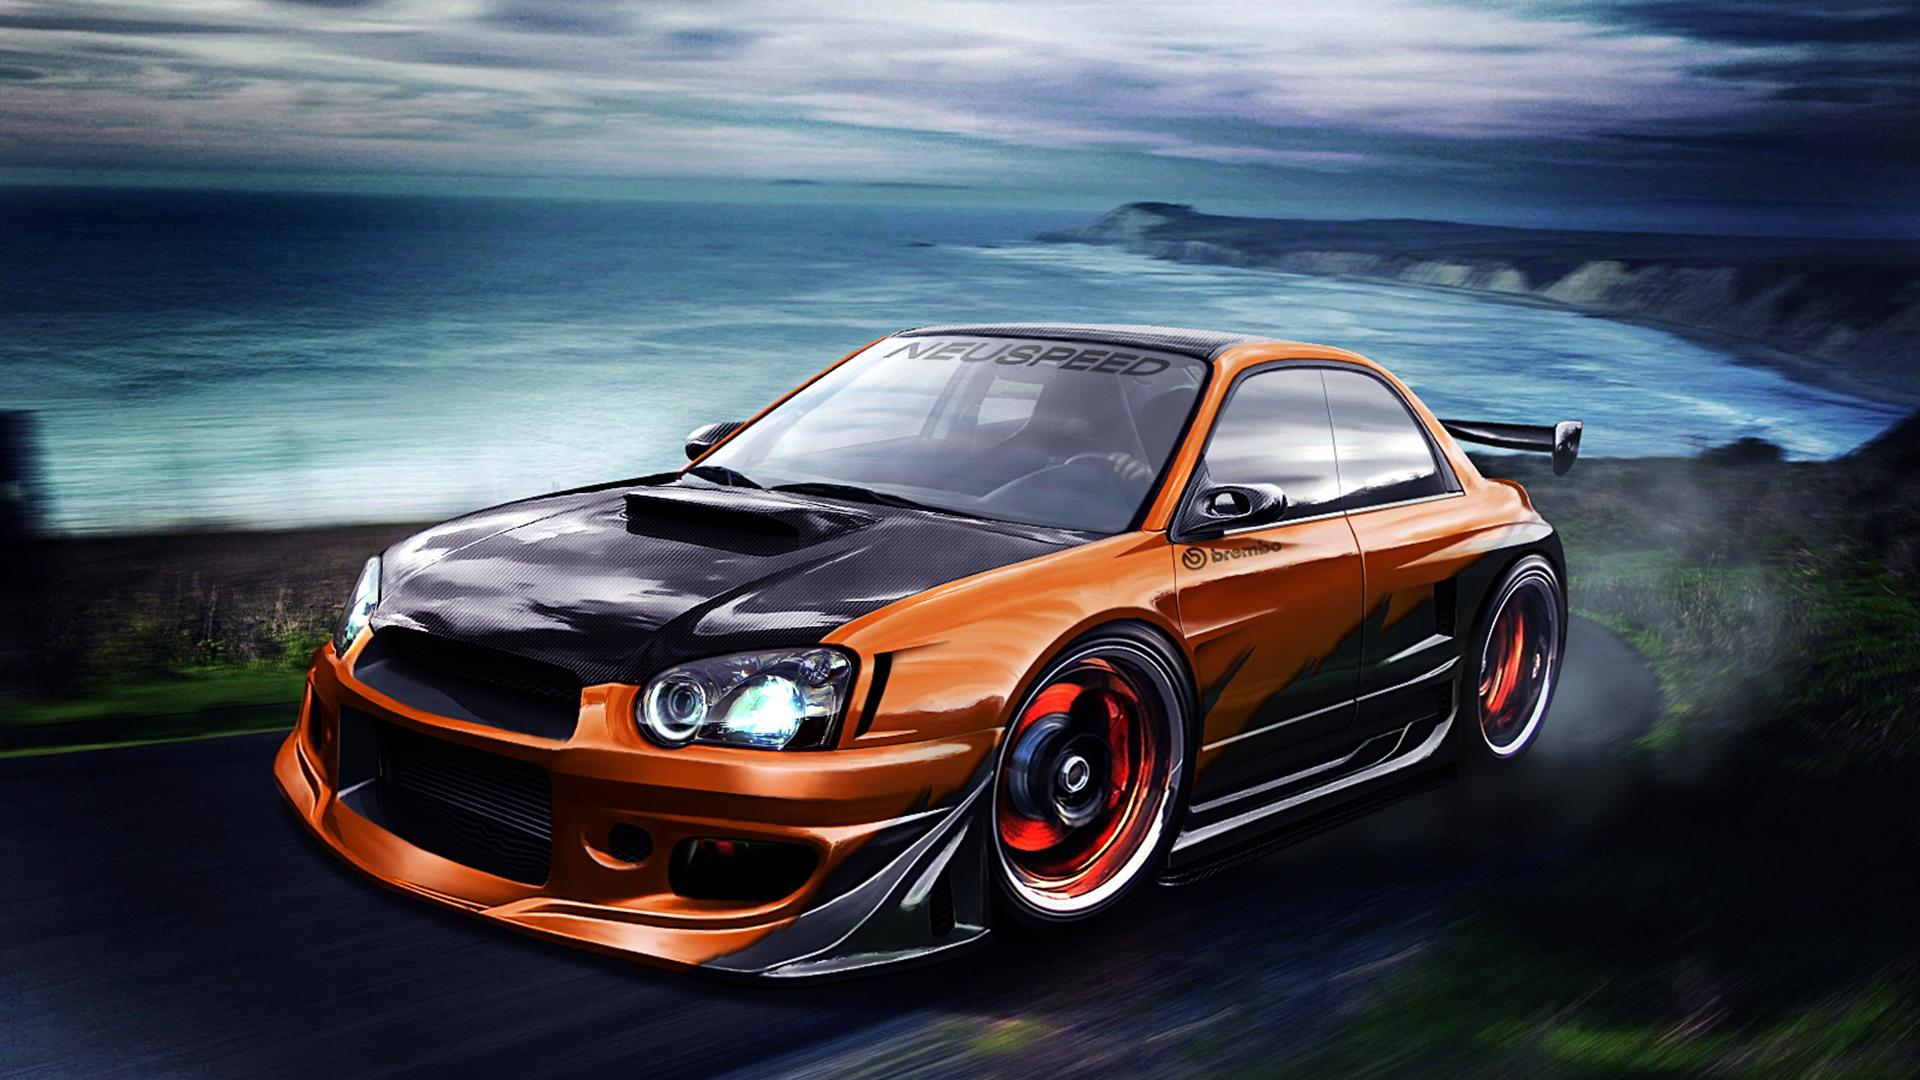 Sweet Car Backgrounds